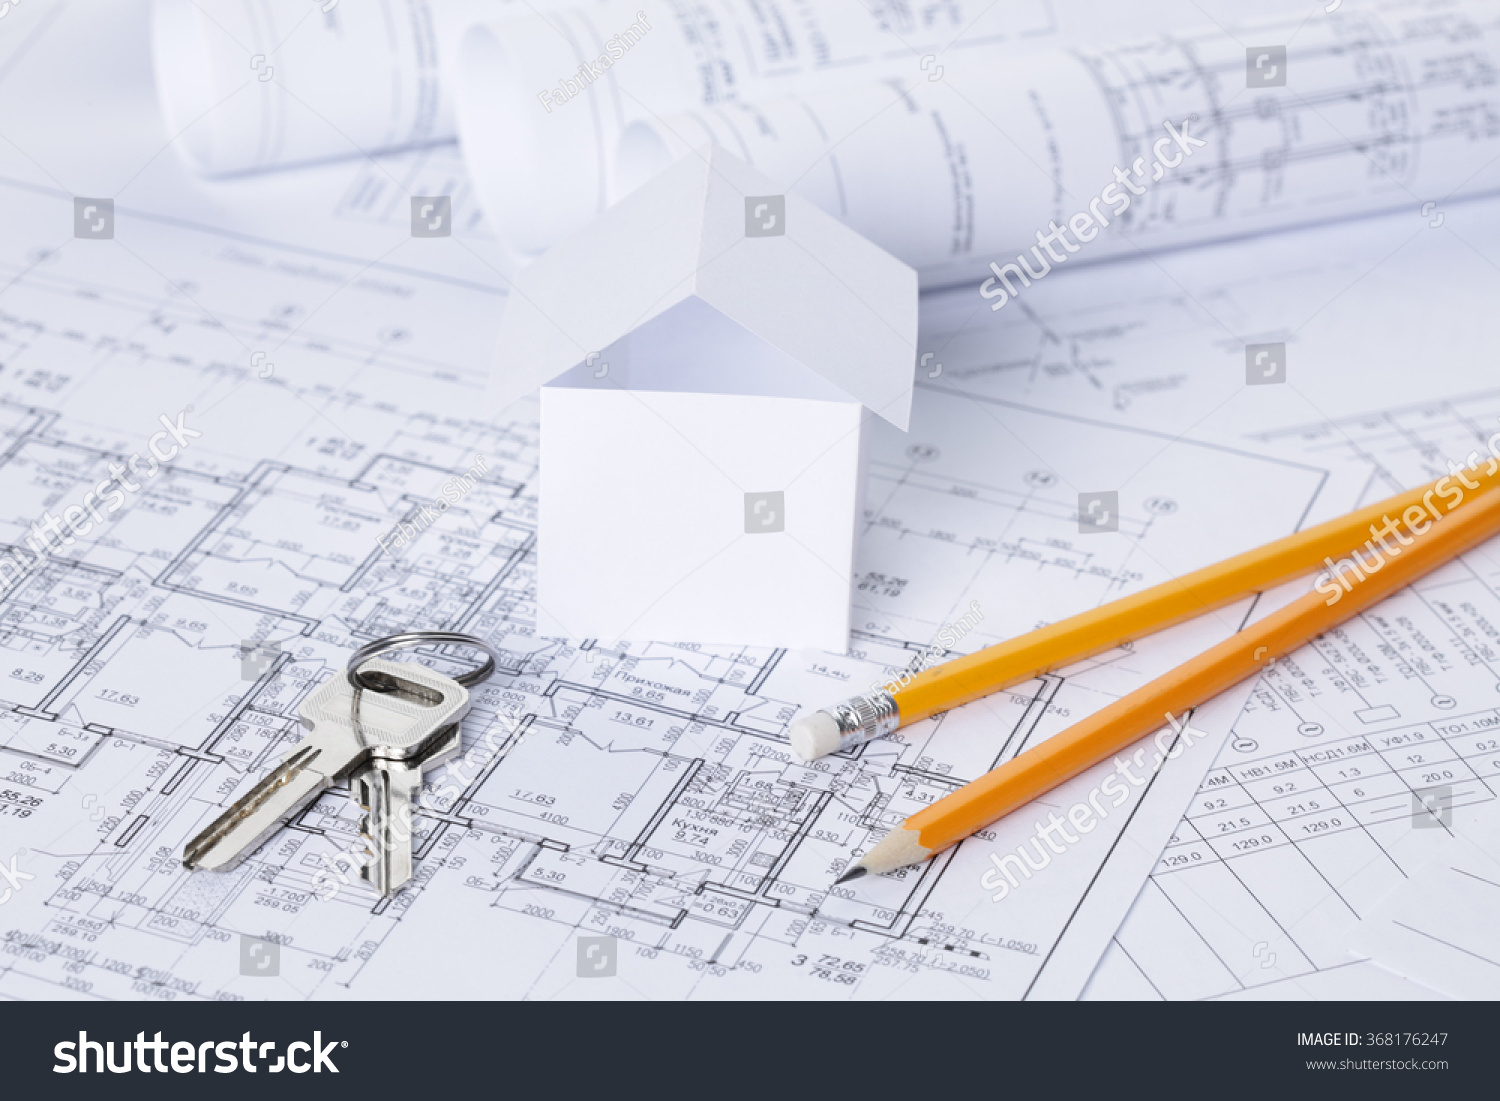 Architectural project blueprints blueprint rolls and divider architectural project blueprints blueprint rolls and divider compass calipers folding ruler on plans engineering tools view from the top copy space malvernweather Choice Image